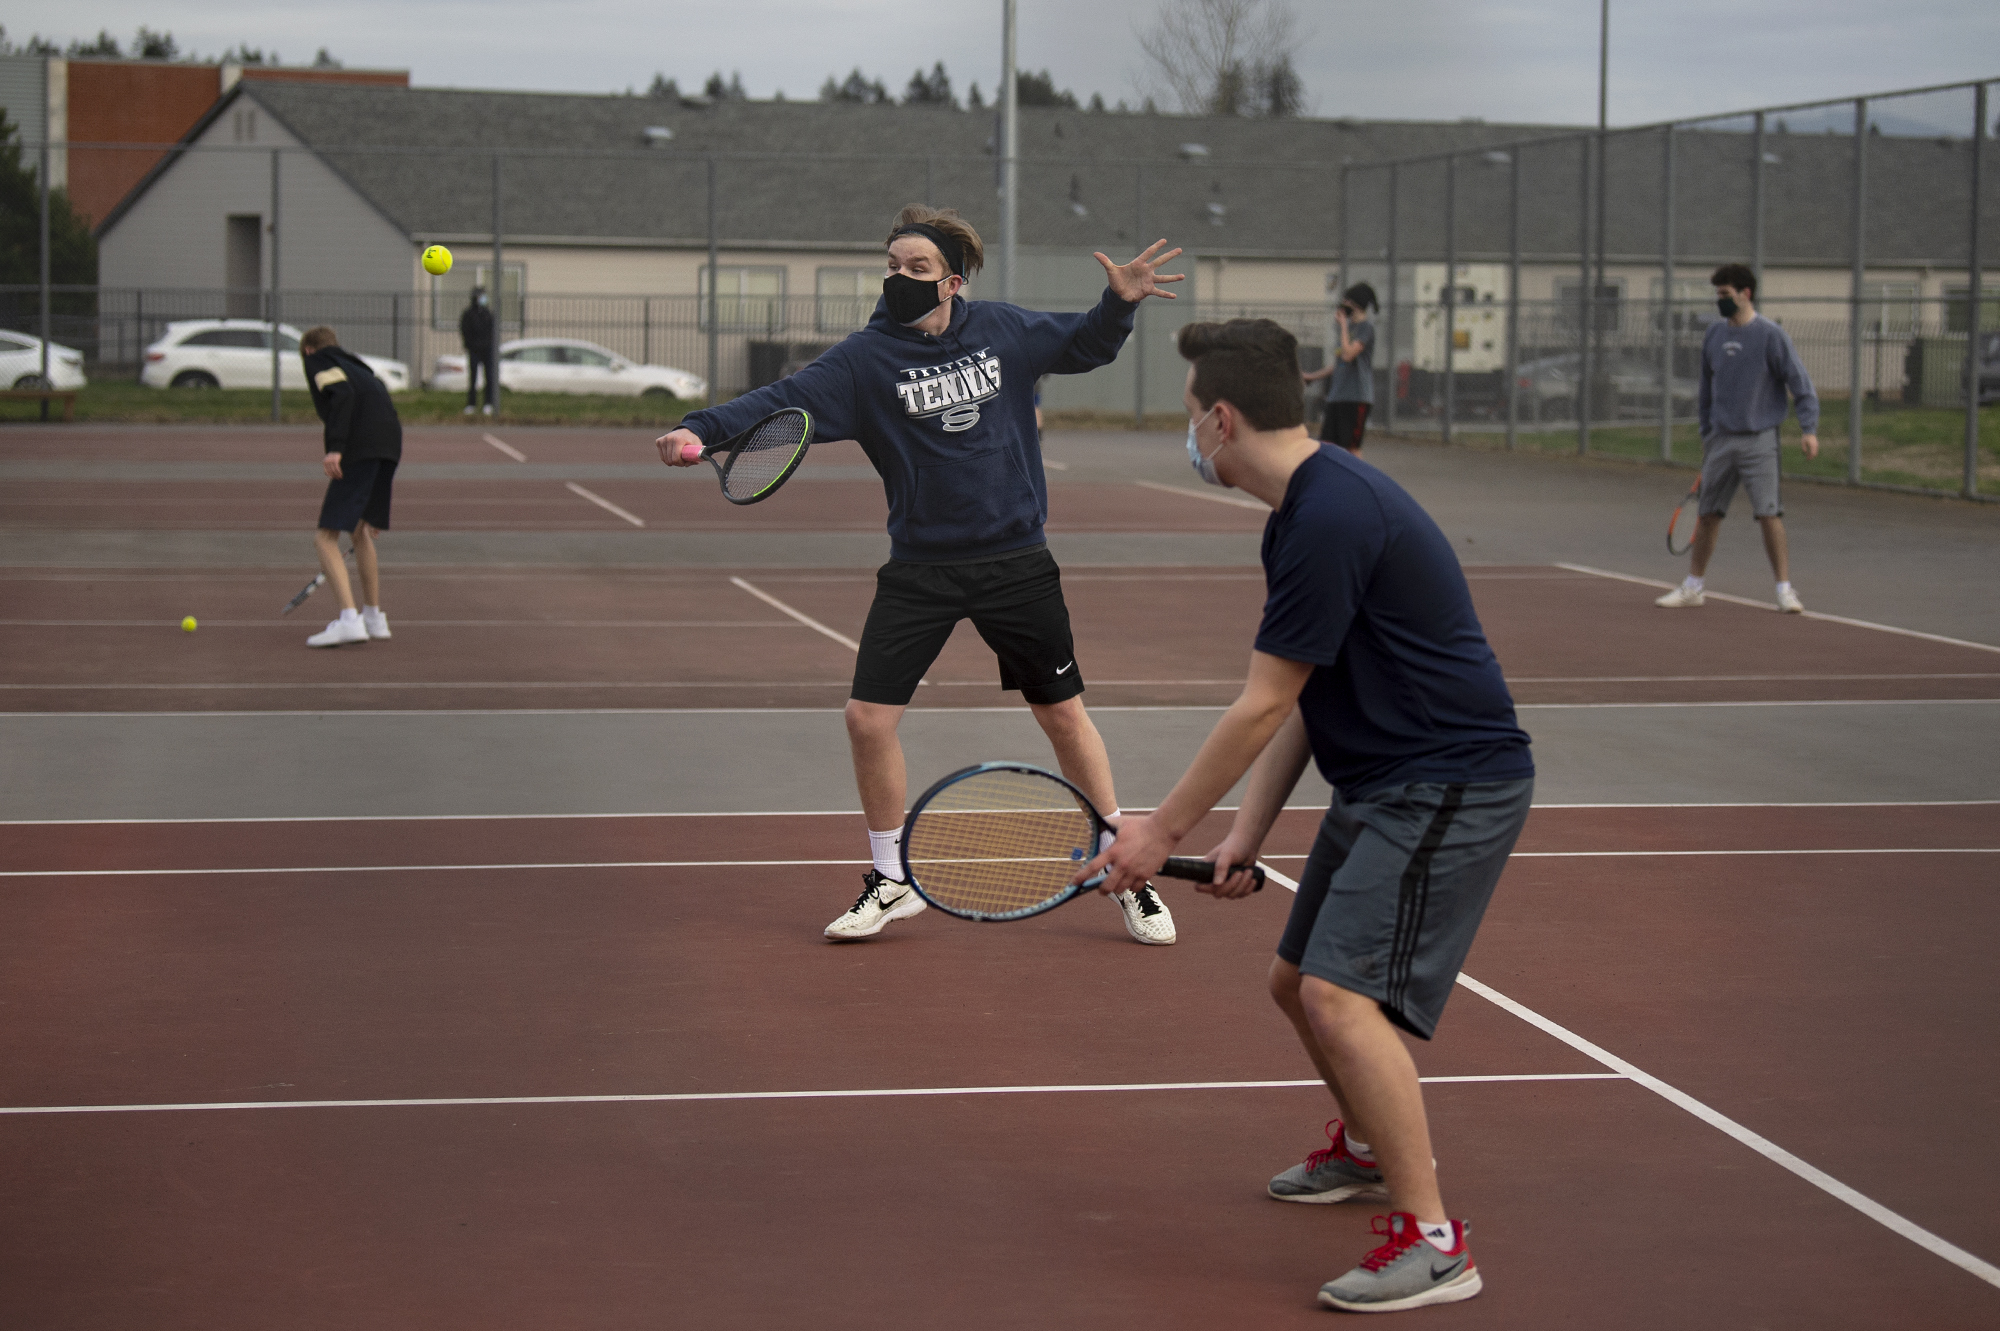 Skyview junior Noam Larson hits a return while teammate Ryan Oehler, a senior, watches on in a 3A/4A Greater St. Helens League boys tennis match on Monday, February 8, 2021, at Union High School. Monday was the first time in 333 days that high school sports held competitions.